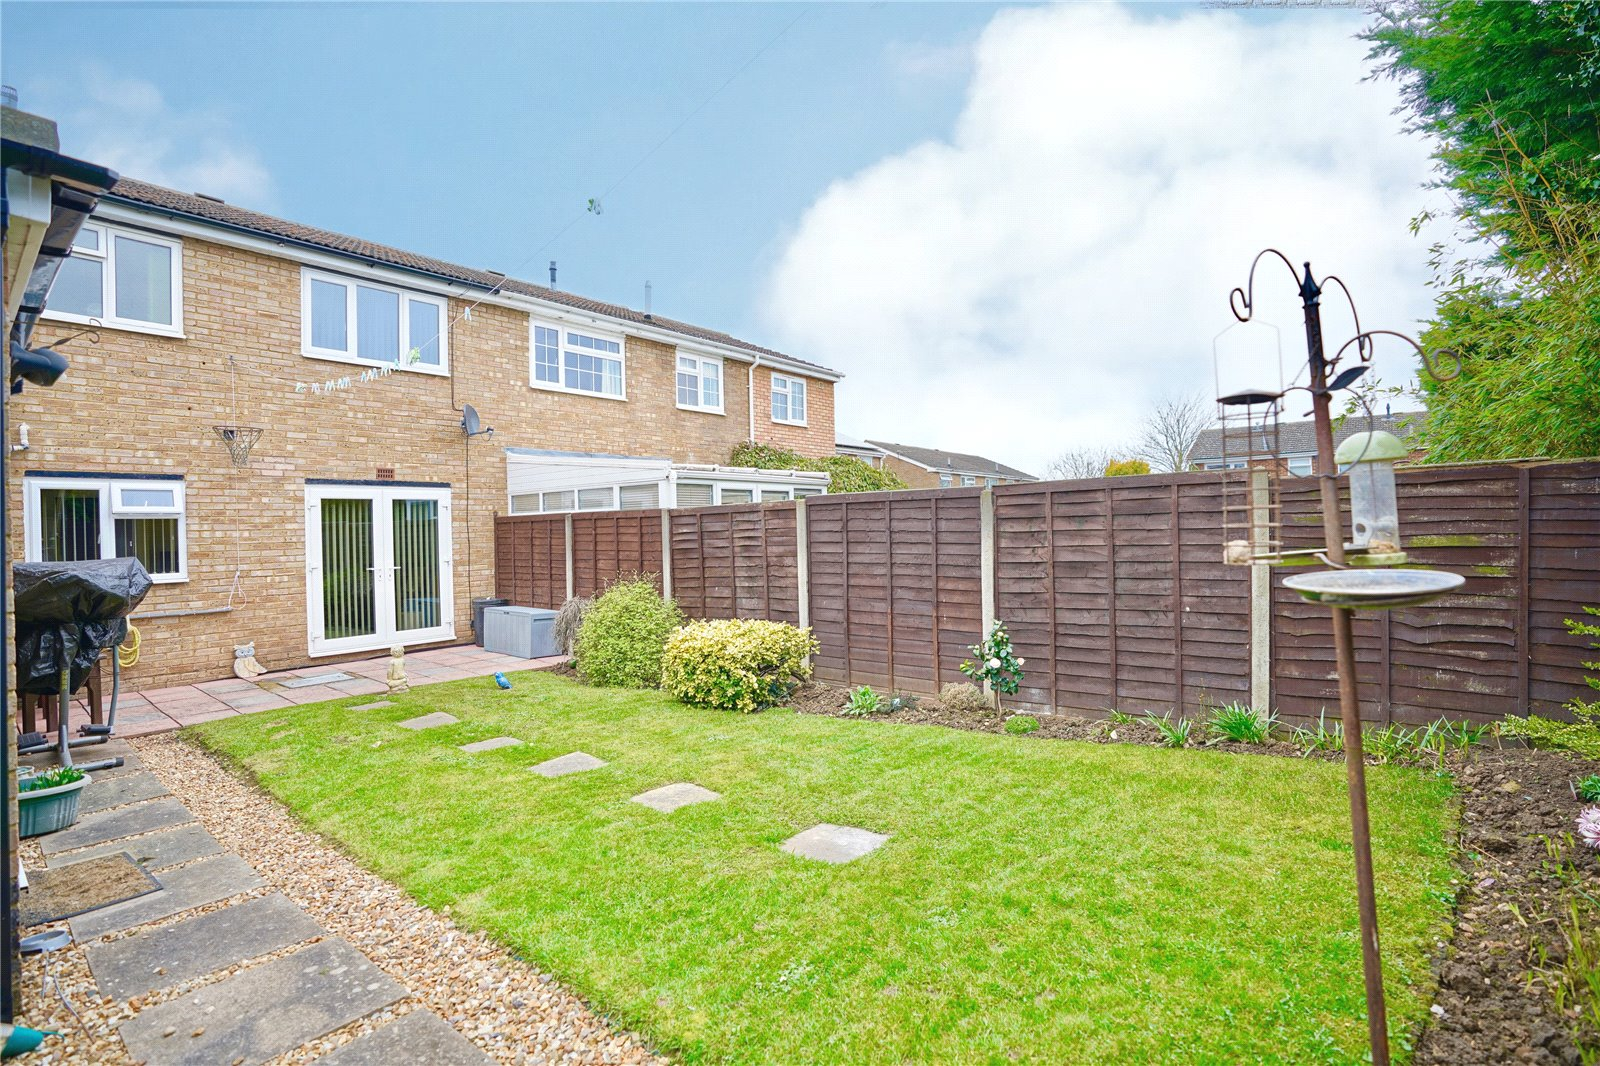 4 bed house for sale in Eaton Socon, PE19 8HU 12